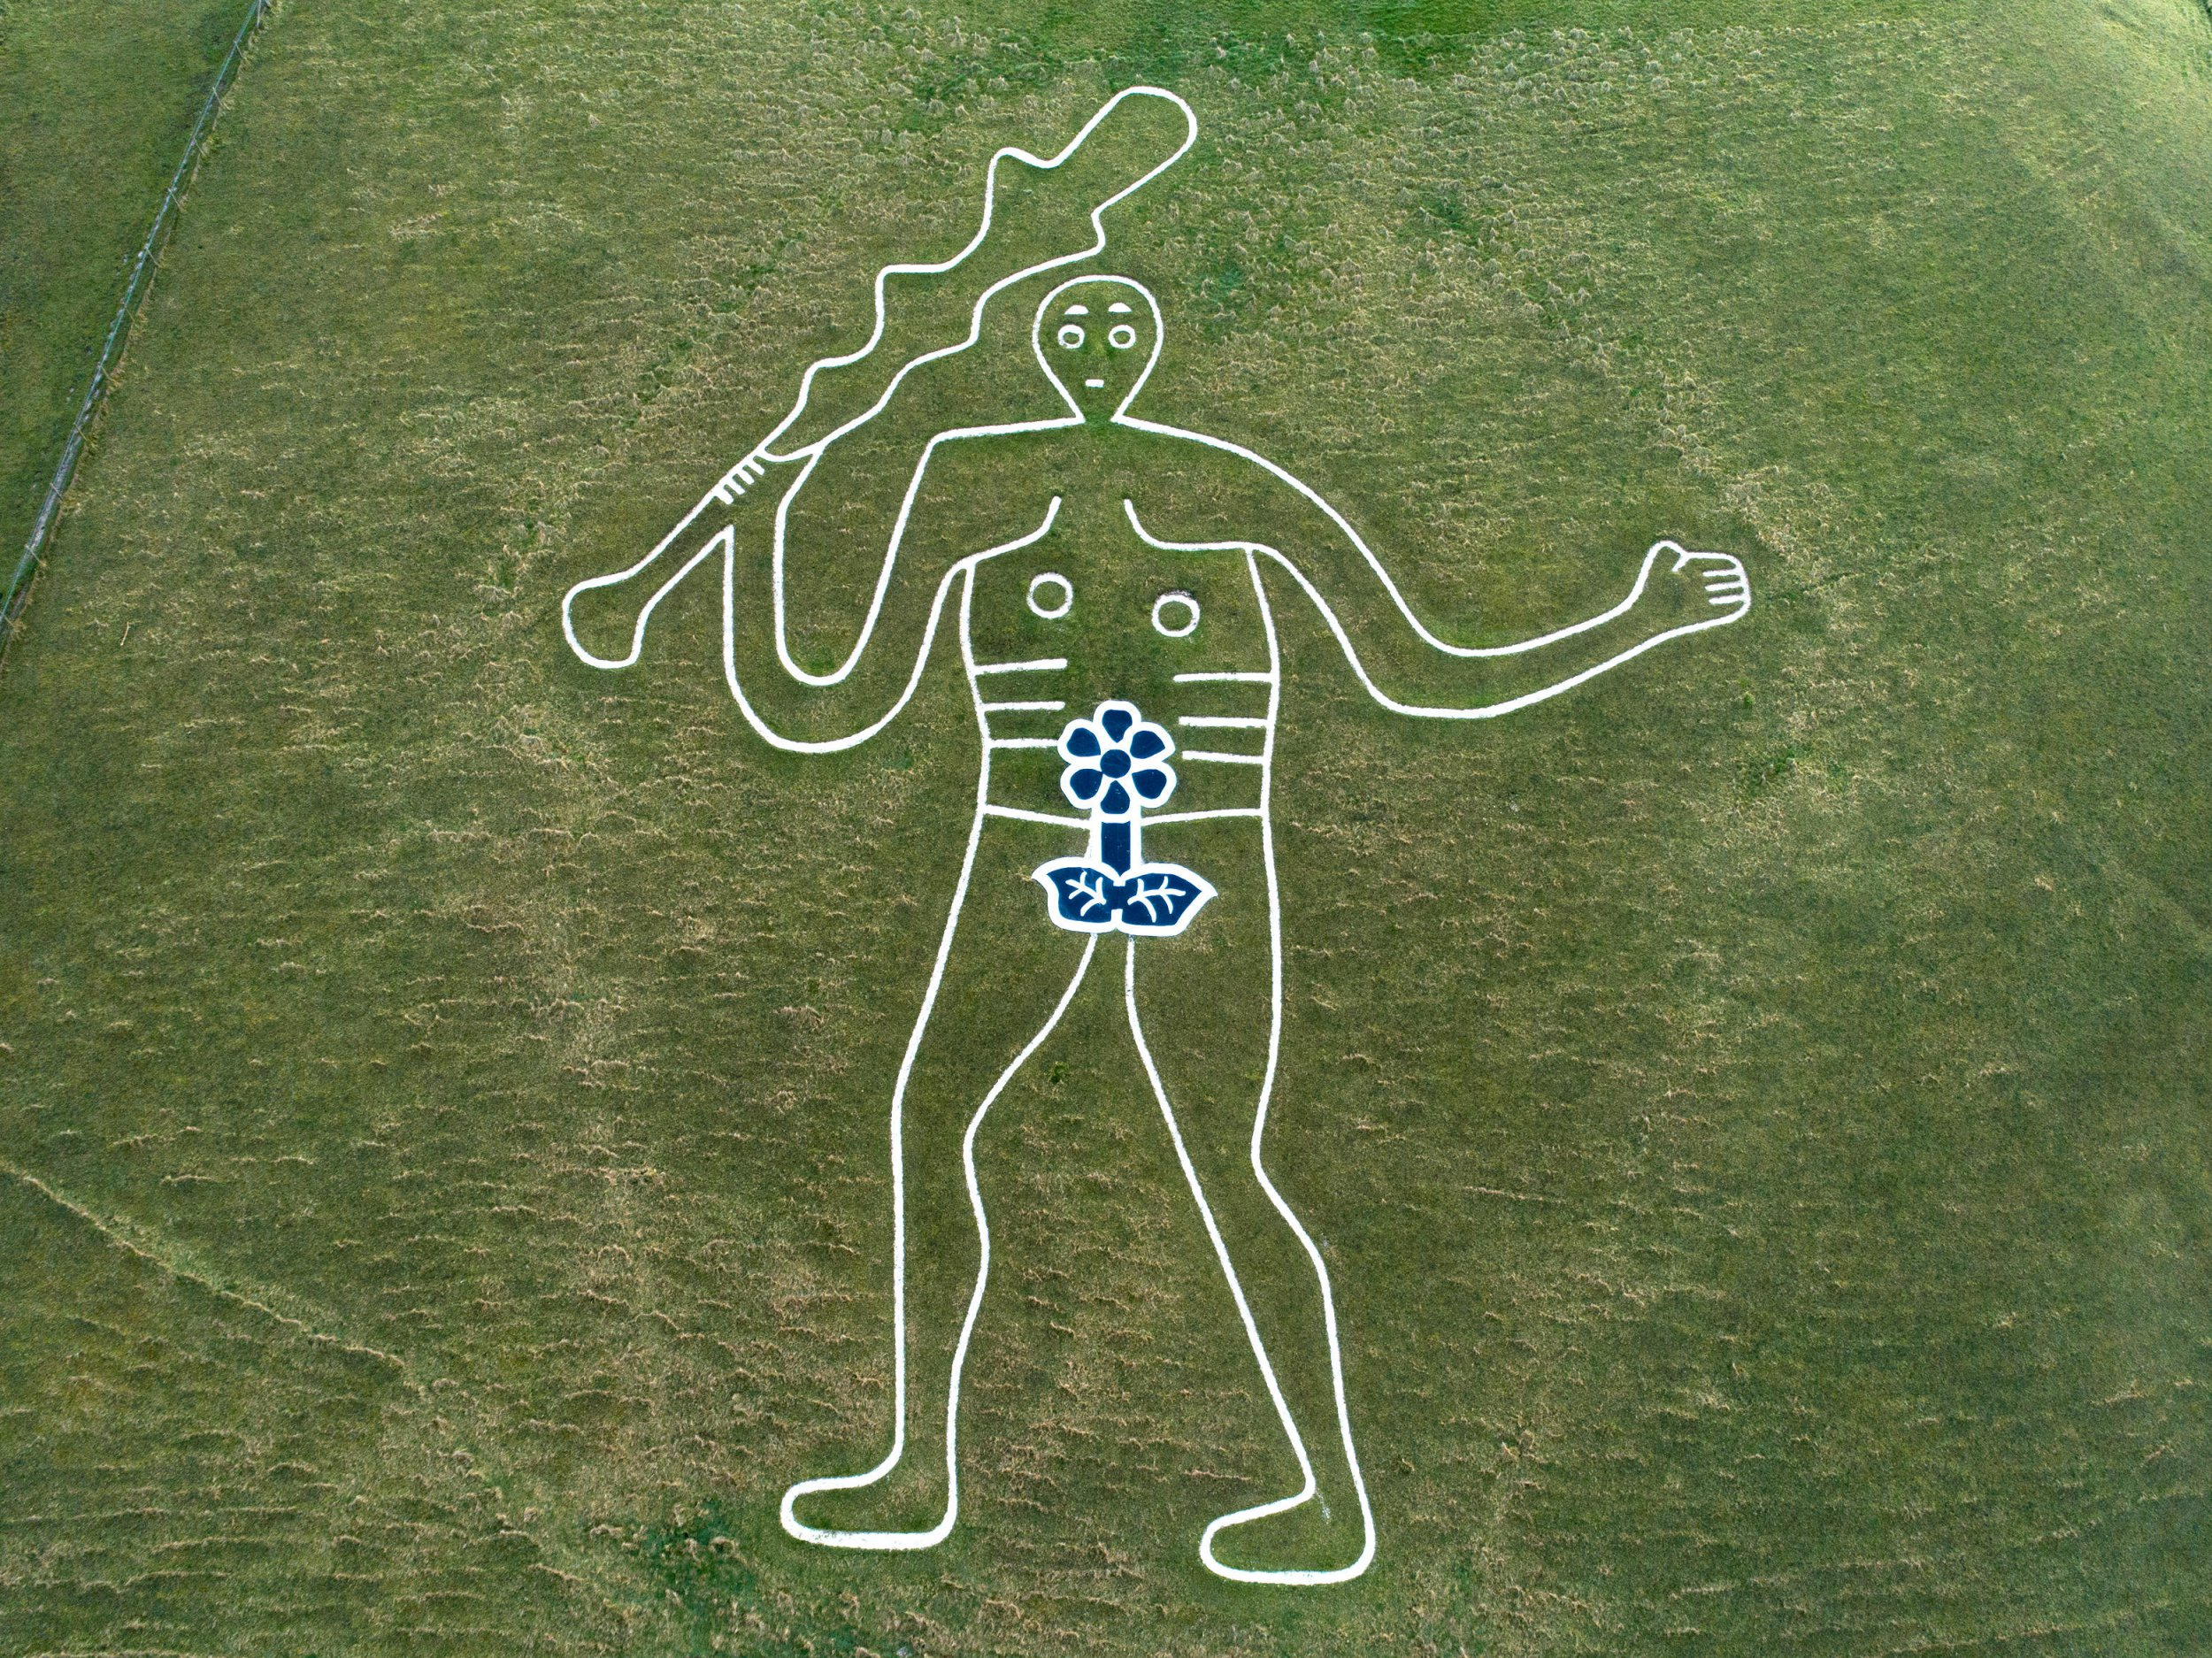 Alamy Live News. RWYA90 Cerne Abbas, Dorset, UK. 8th March, 2019. To celebrate International Women?s Day 2019 a team of anonymous ?guerilla artists? working through the night have temporarly turned the Cerne Abbas Giant?s 9 metre penis into a 9 metre flower. This humorous temporary enrichment and transformation into a flower is not a call for a permanent change to the chalk creation but an invitation to begin peaceful discussions about relationships within society and hopefully creating equality. Gordon Scammell/Jay Enticknap/Live News This is an Alamy Live News image and may not be part of your current Alamy deal . If you are unsure, please contact our sales team to check.